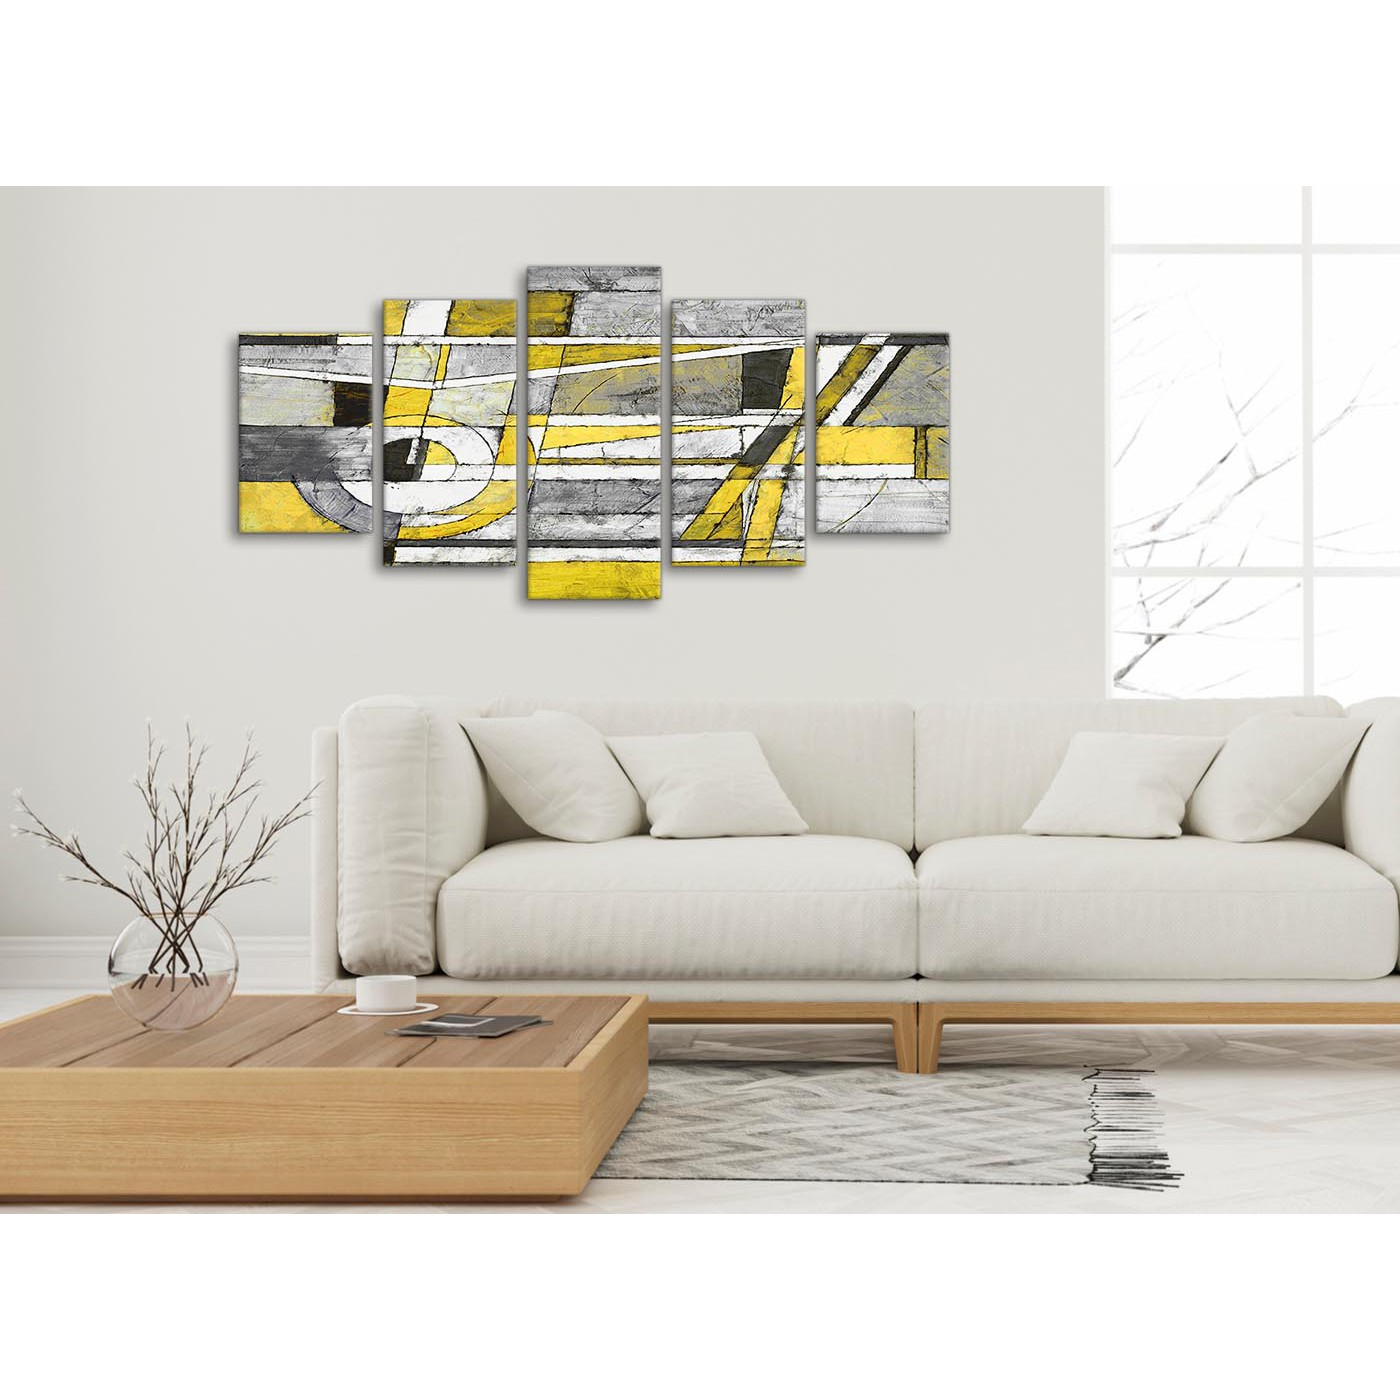 5 Piece Yellow Grey Painting Abstract Living Room Canvas Wall Art ...